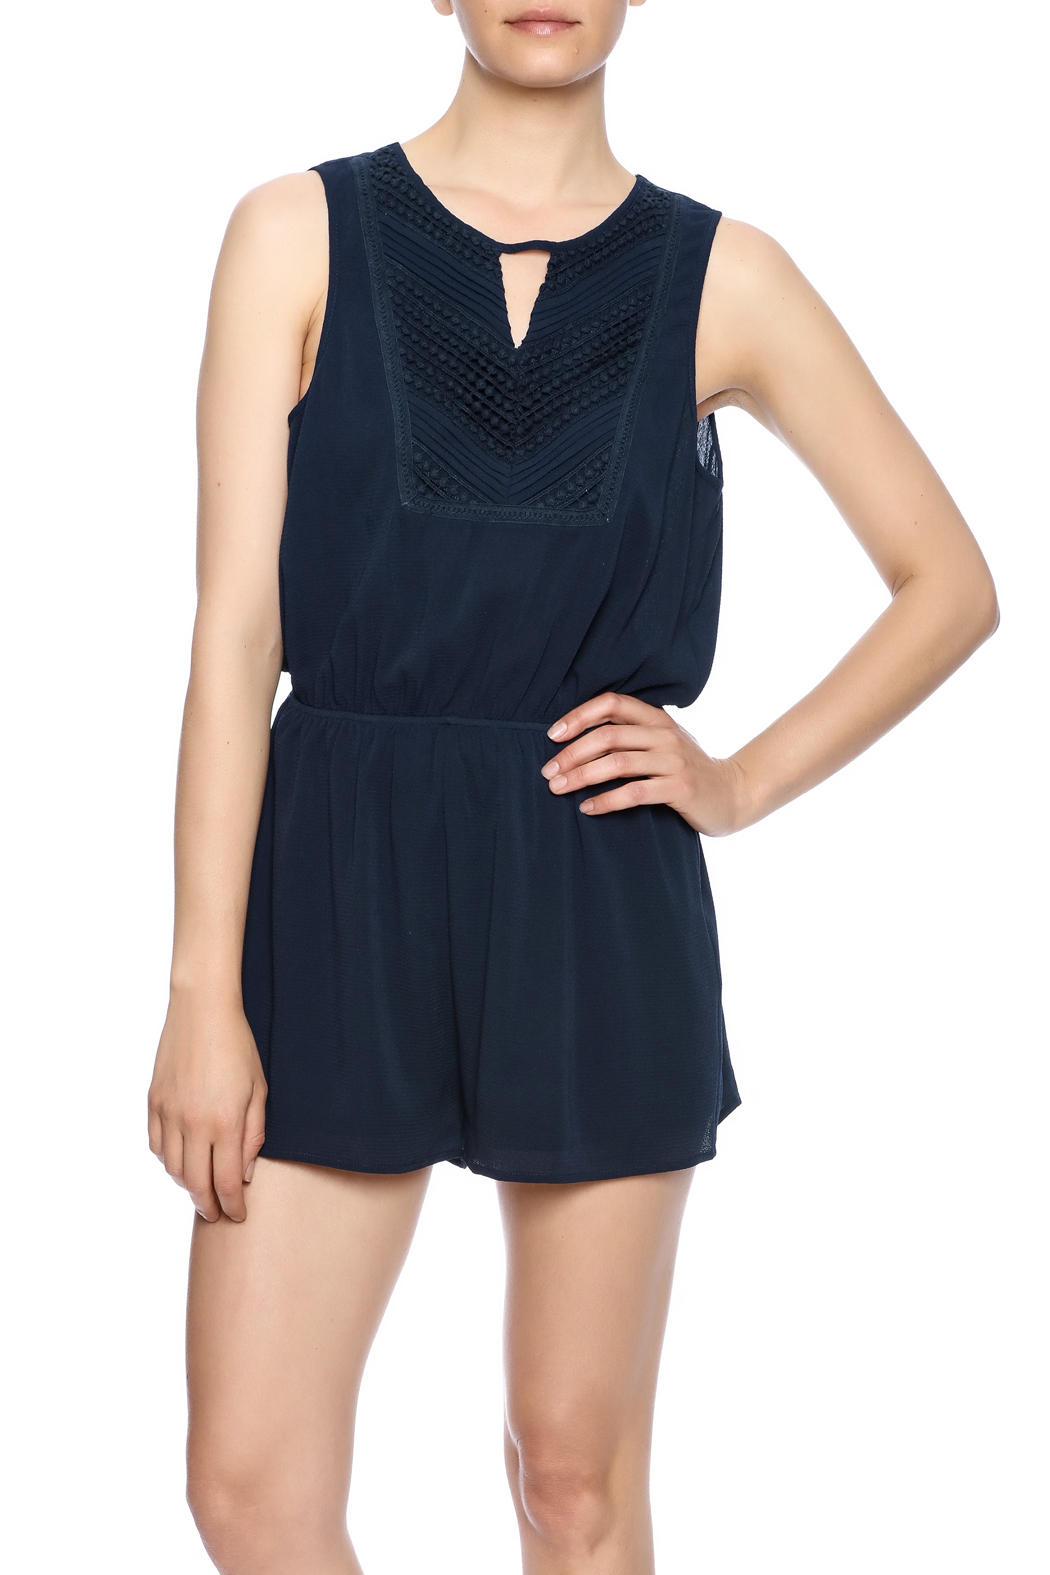 440723cff0af She + Sky Navy Pintuck Romper from Texas by Miss McGillicuddy s ...